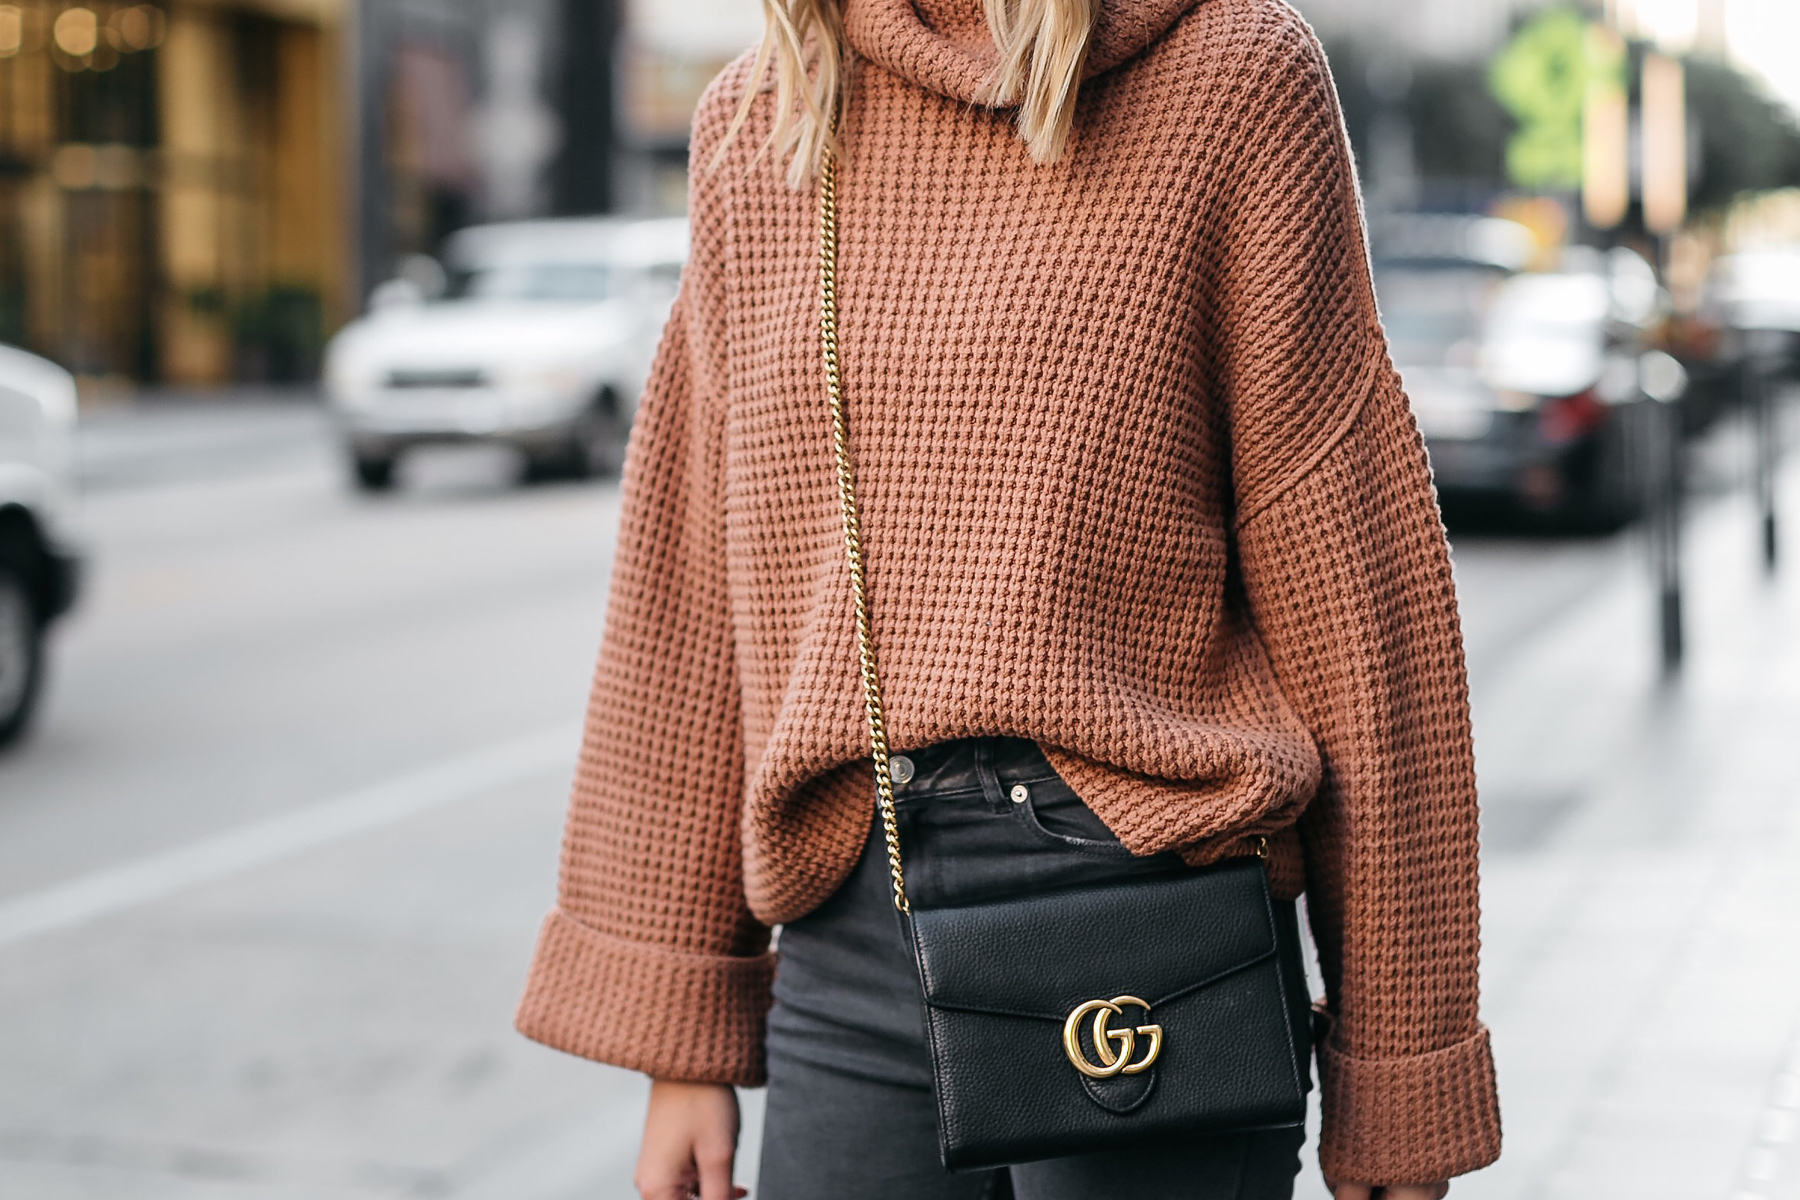 Fashion Jackson Oversized Sweater Free People Park City Pullover Tan Sweater Gucci Marmont Handbag